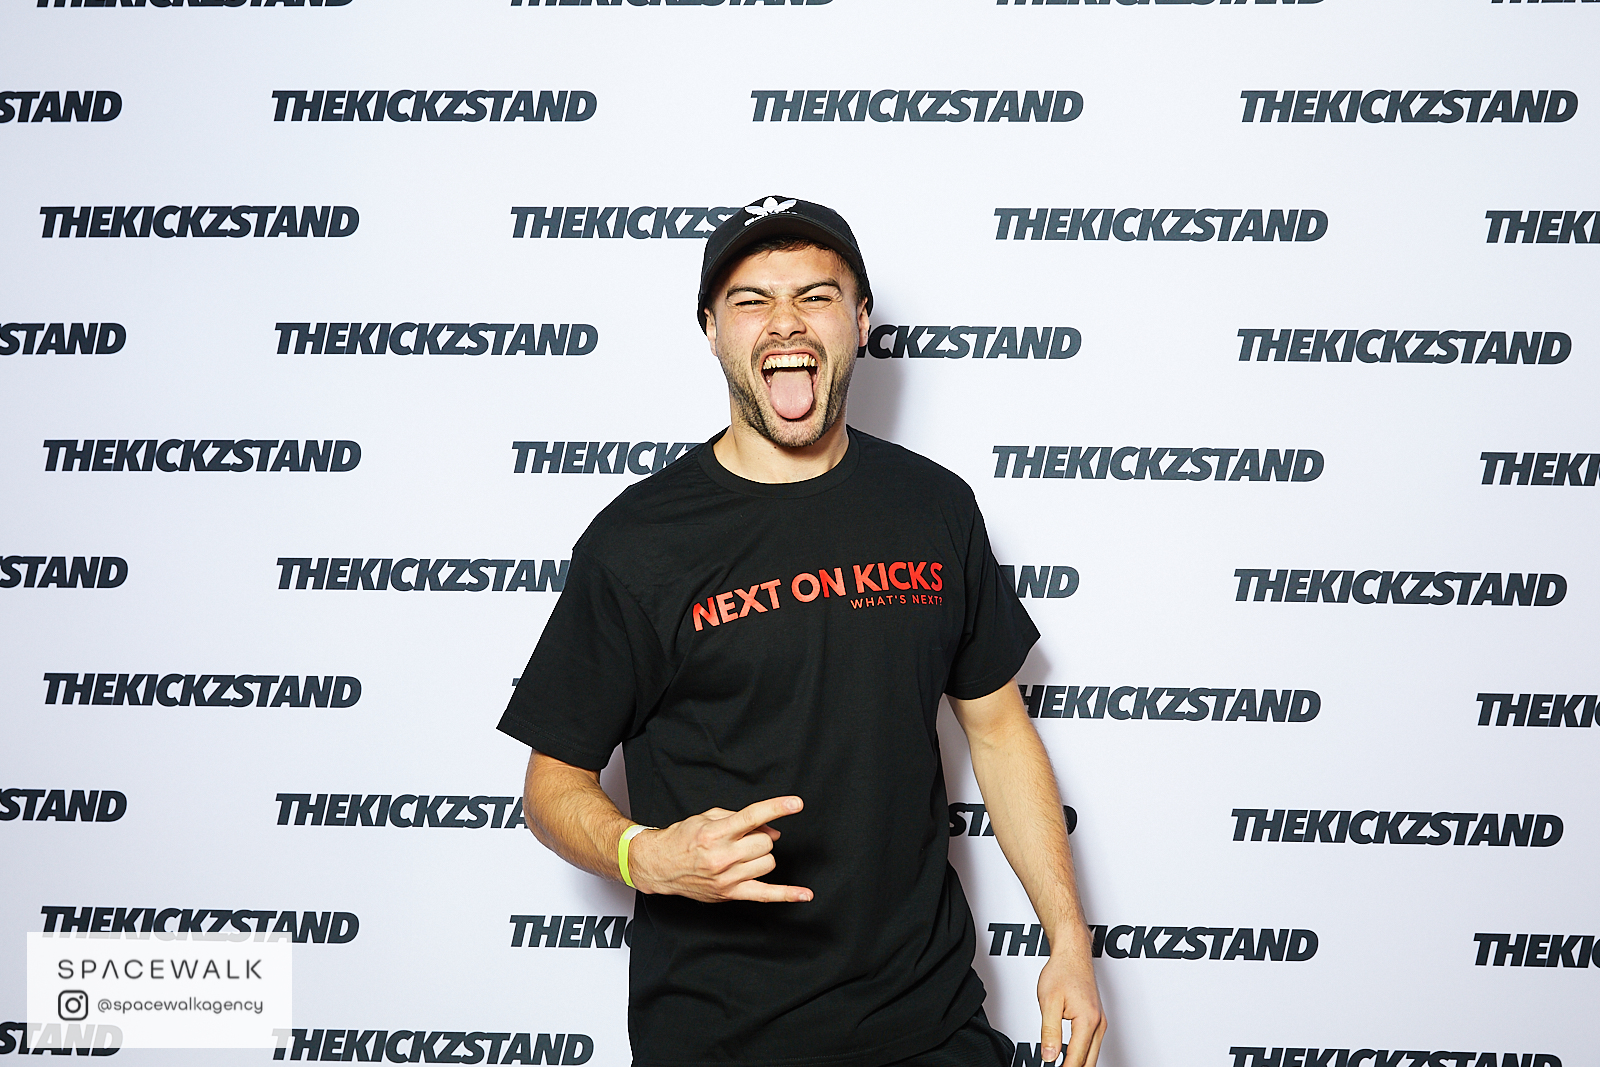 KICKZSTAND_BOOTH_054